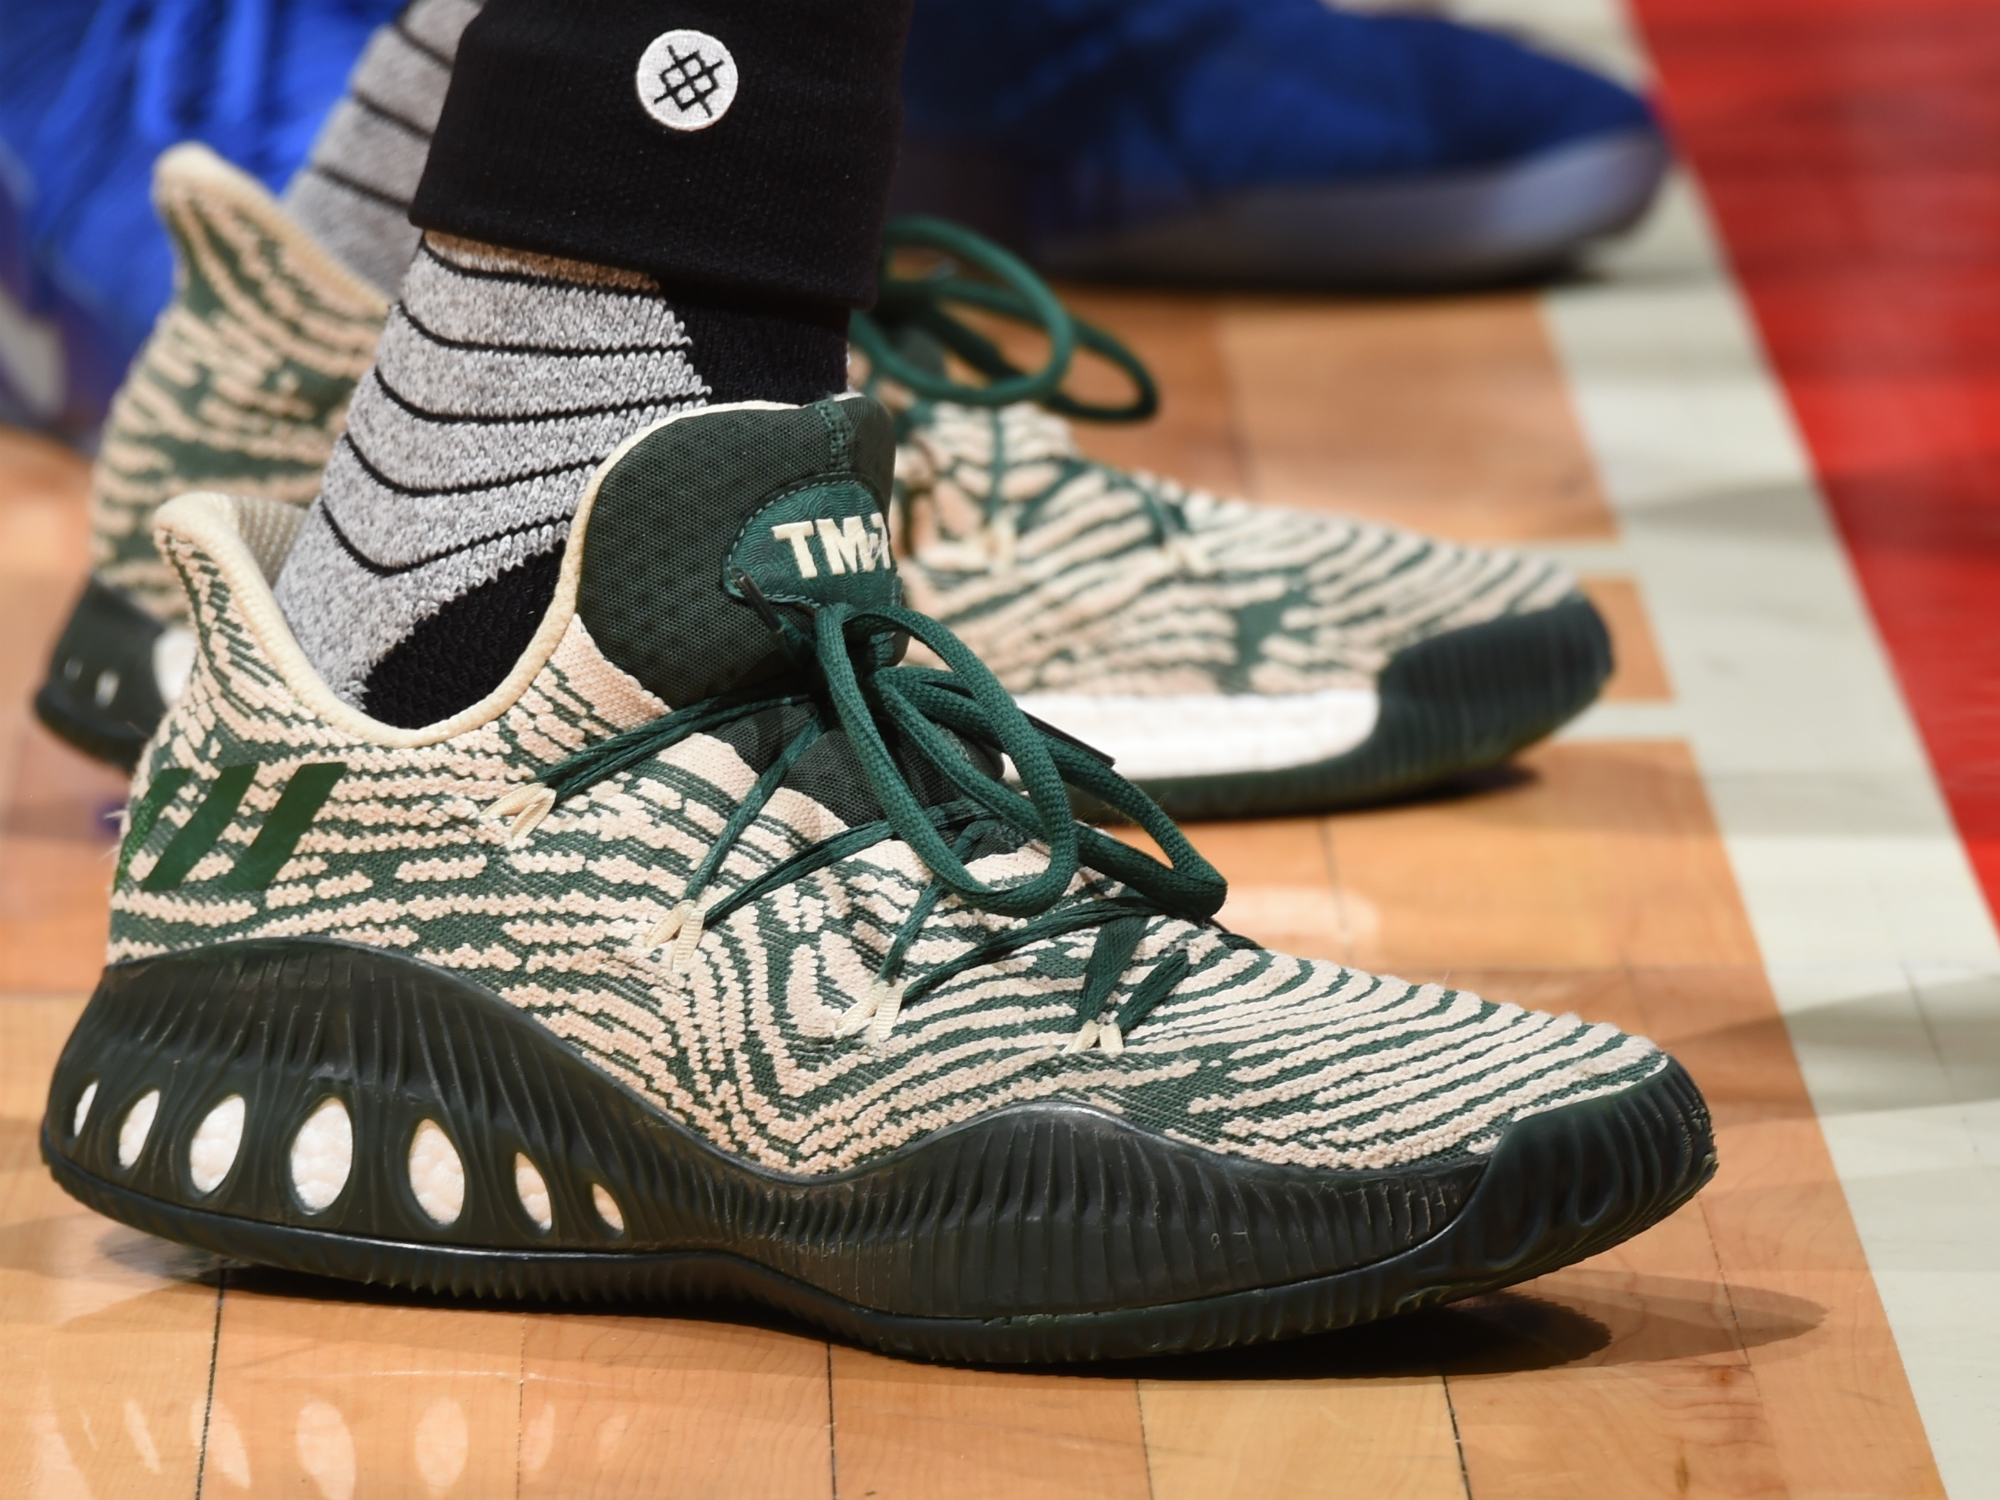 Adidas Crazy Explosive Low worn by Thon Maker